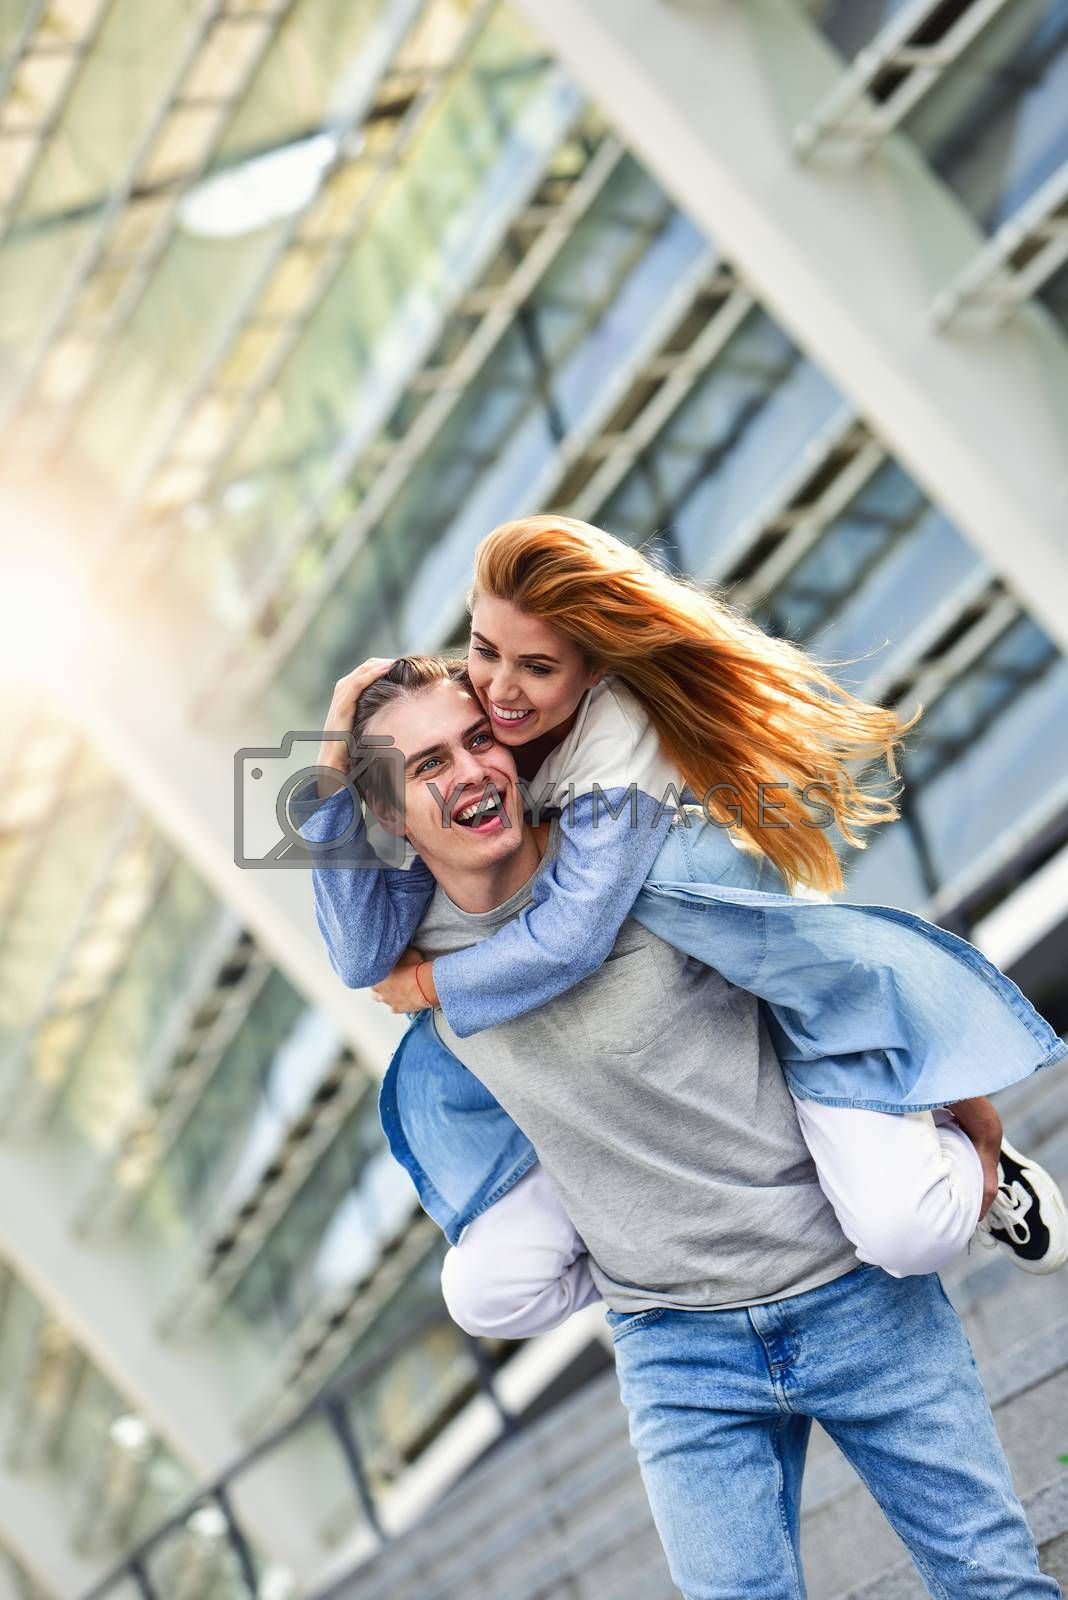 Man giving his pretty girlfriend a piggy back at street smiling at each other on a sunny day.